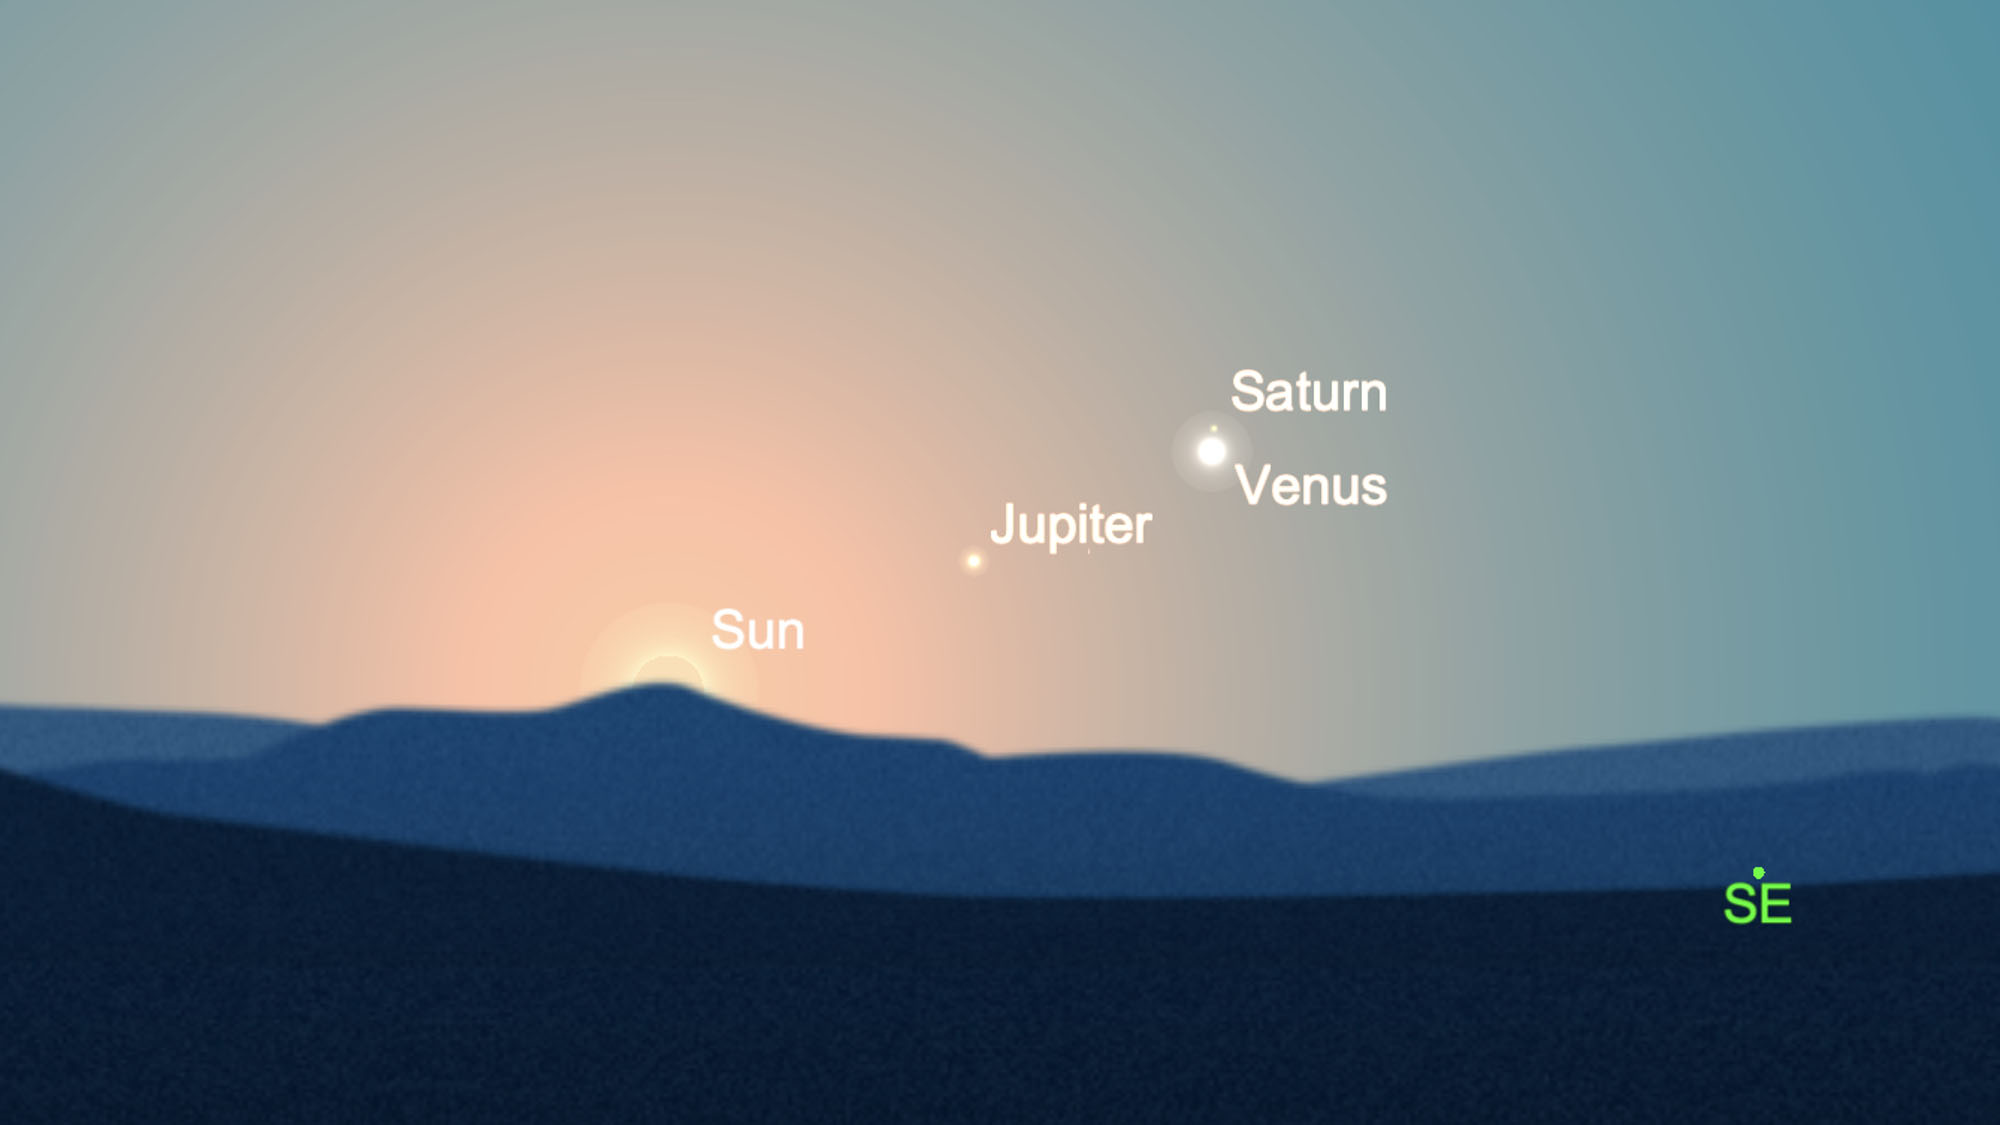 February marks per month of'combustible' planets and tricky skywatching thumbnail